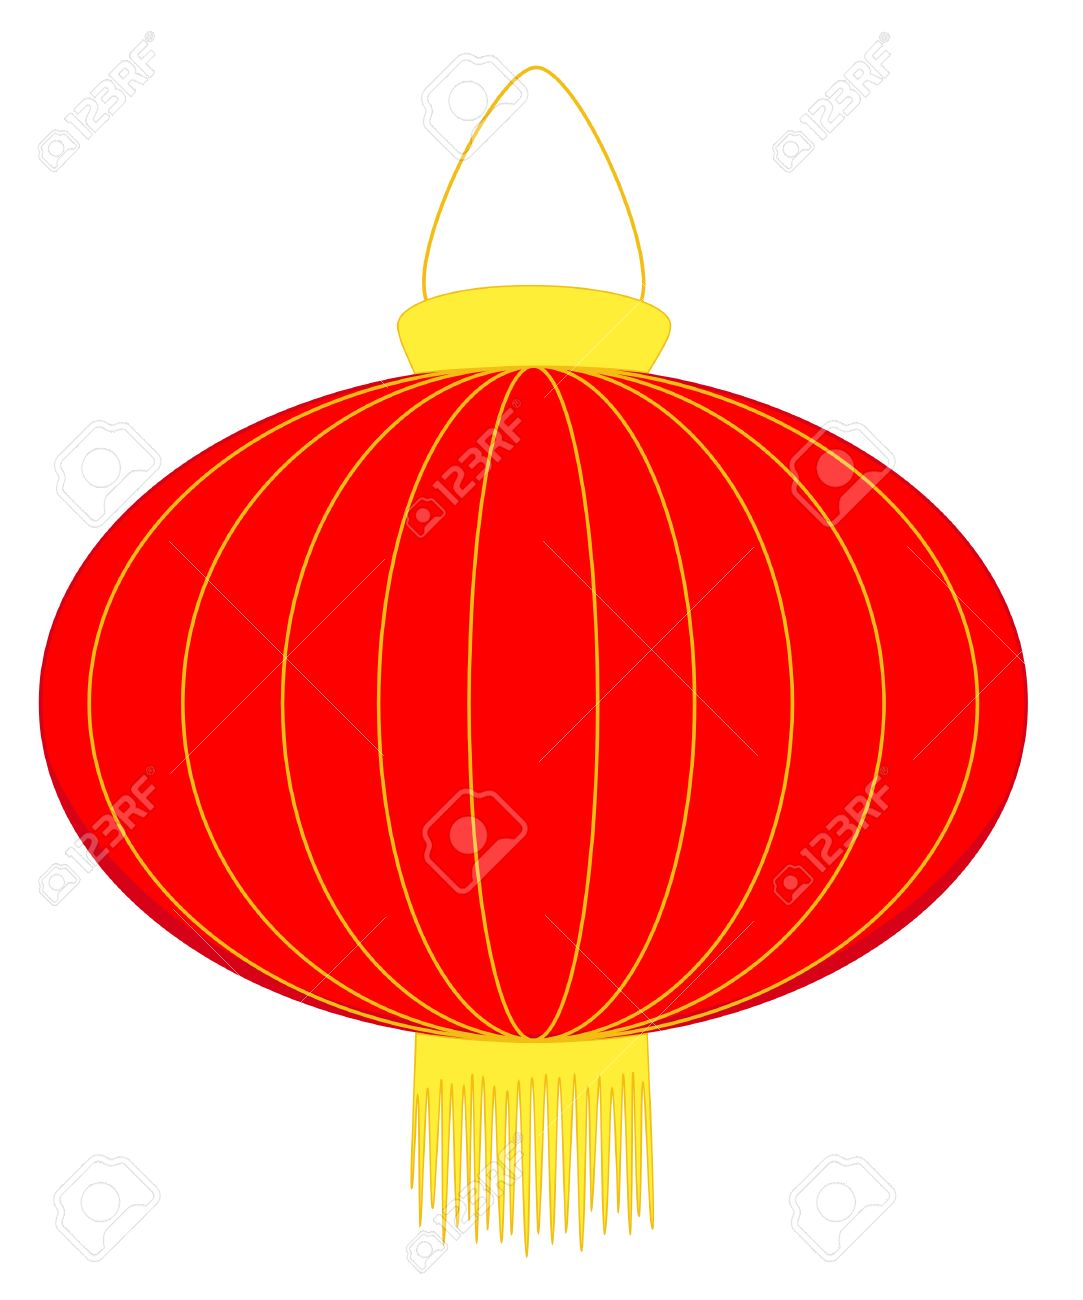 Red lantern for Chinese New Year celebrations.